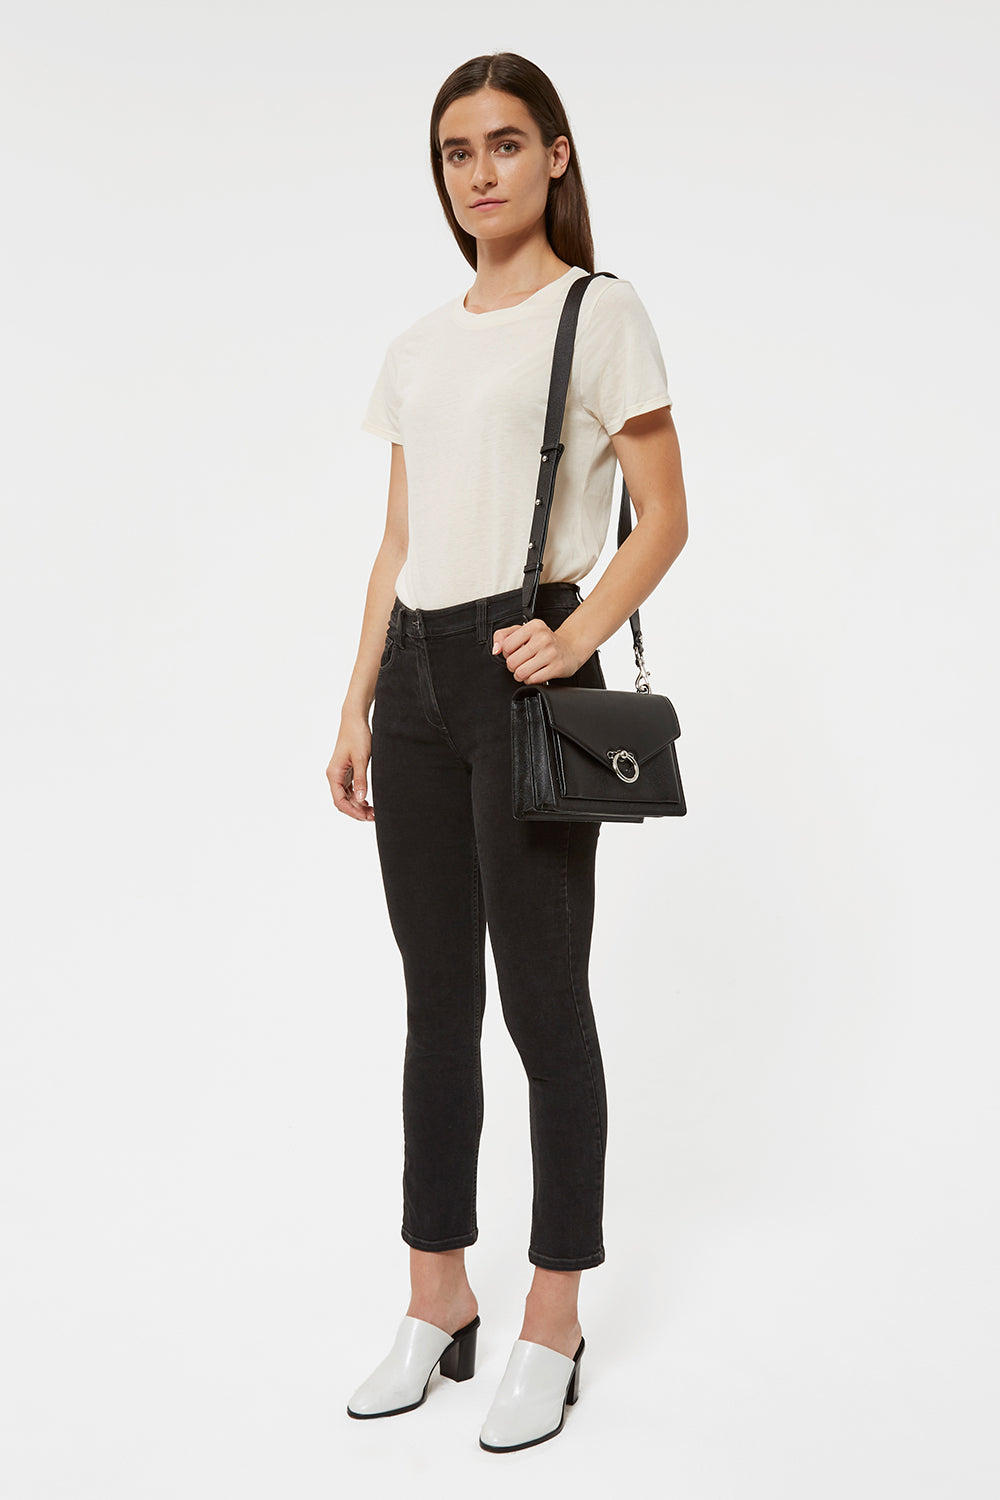 Jean Medium Shoulder Bag